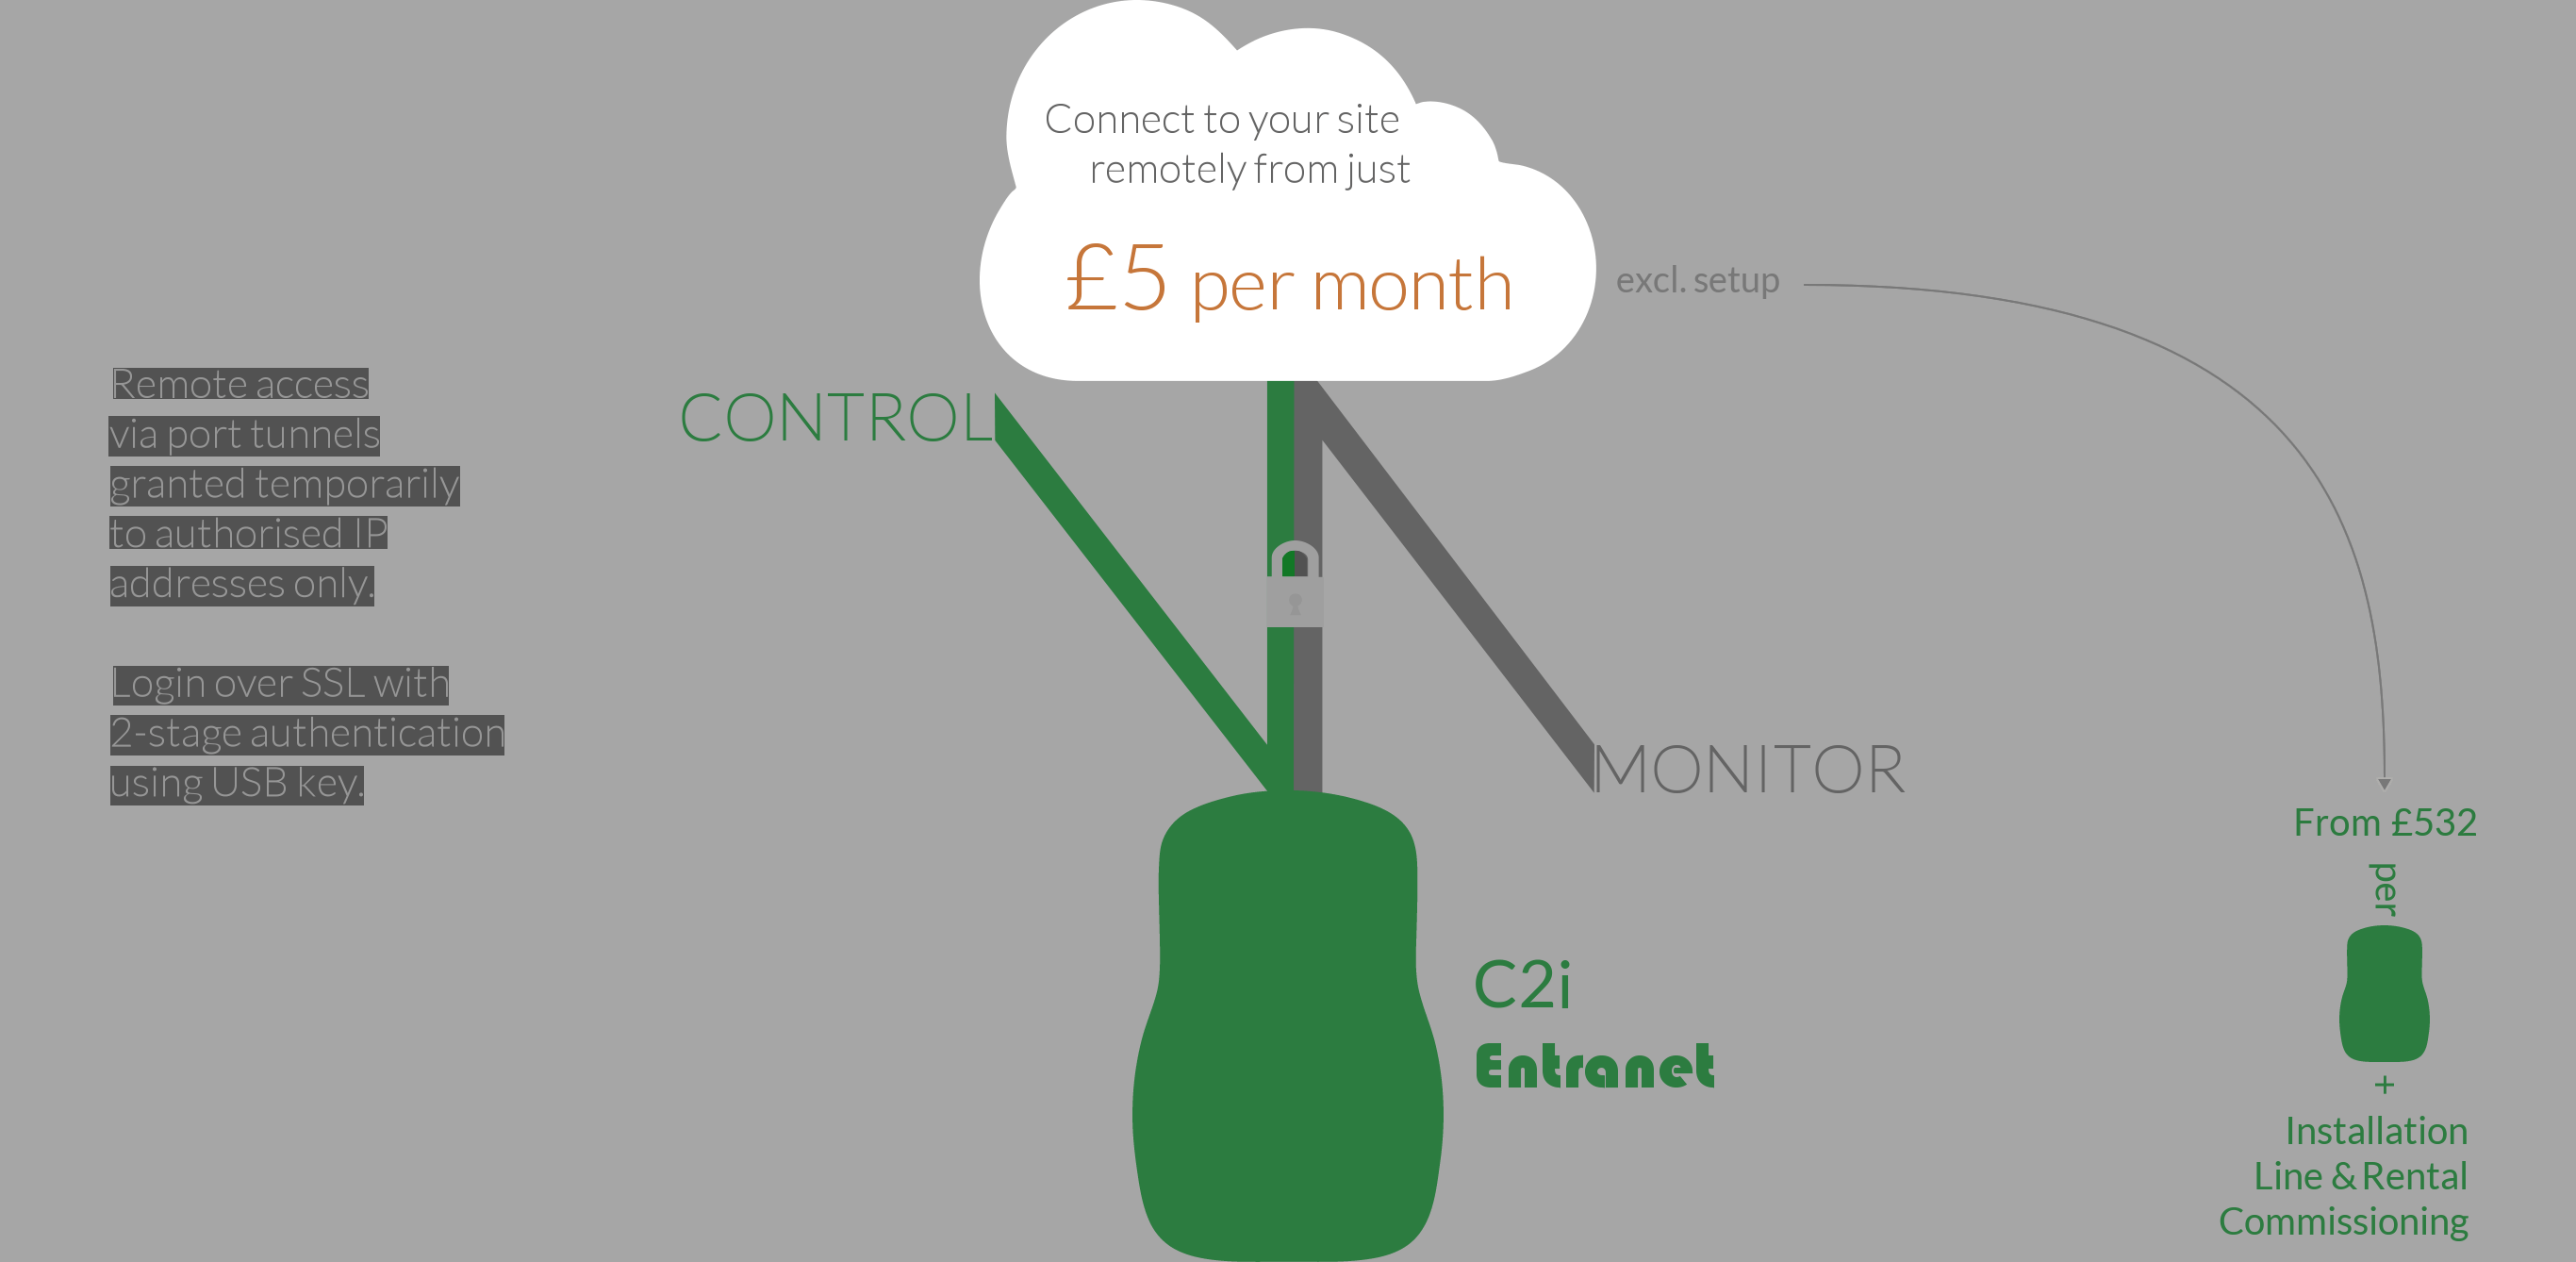 Connect to your site remotely from just £5 per month